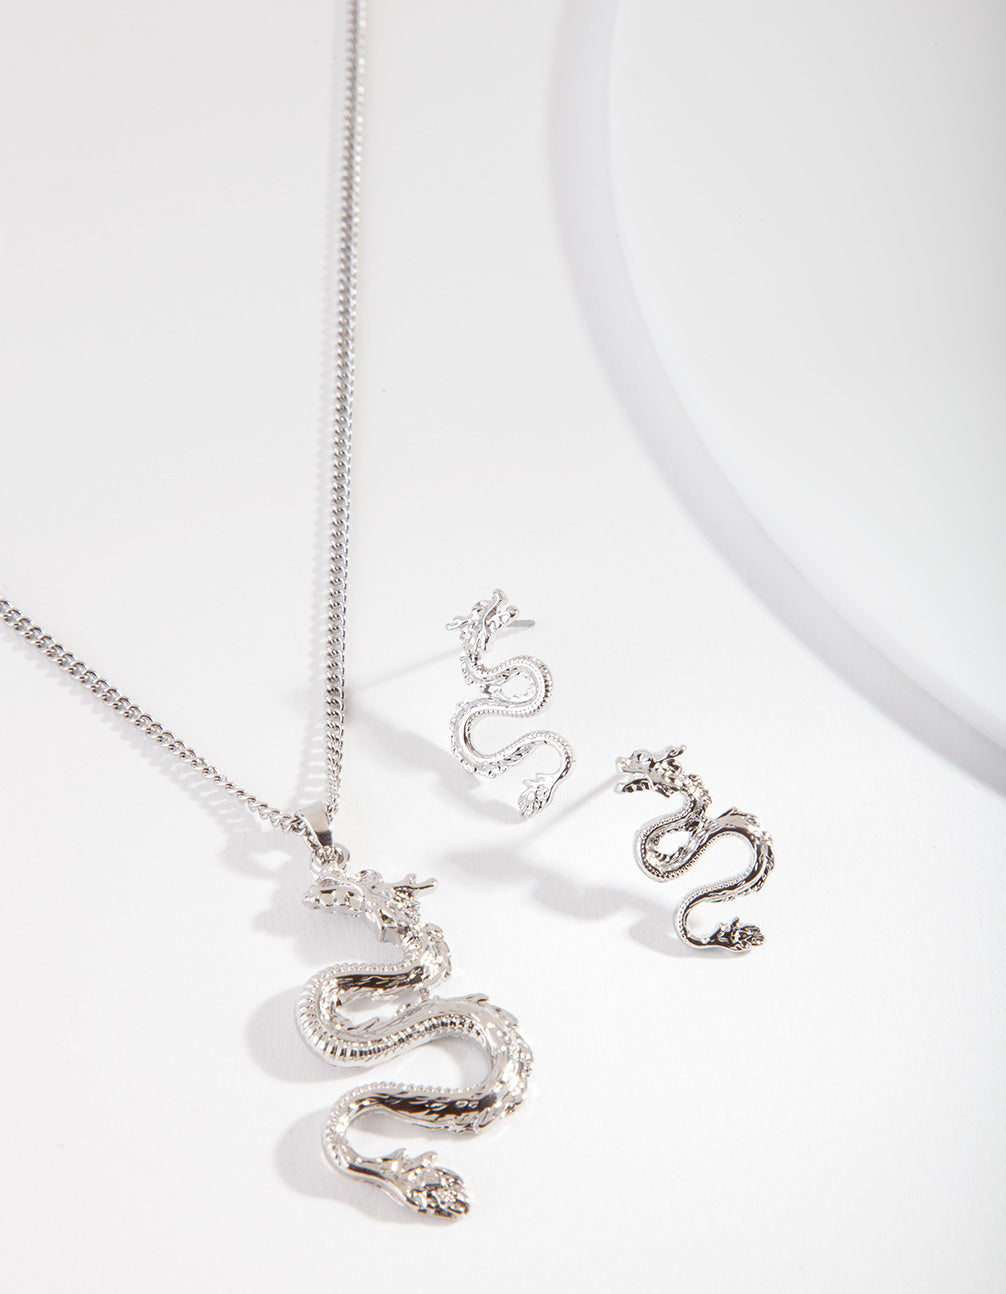 Silver Dragon Necklace Earring Set